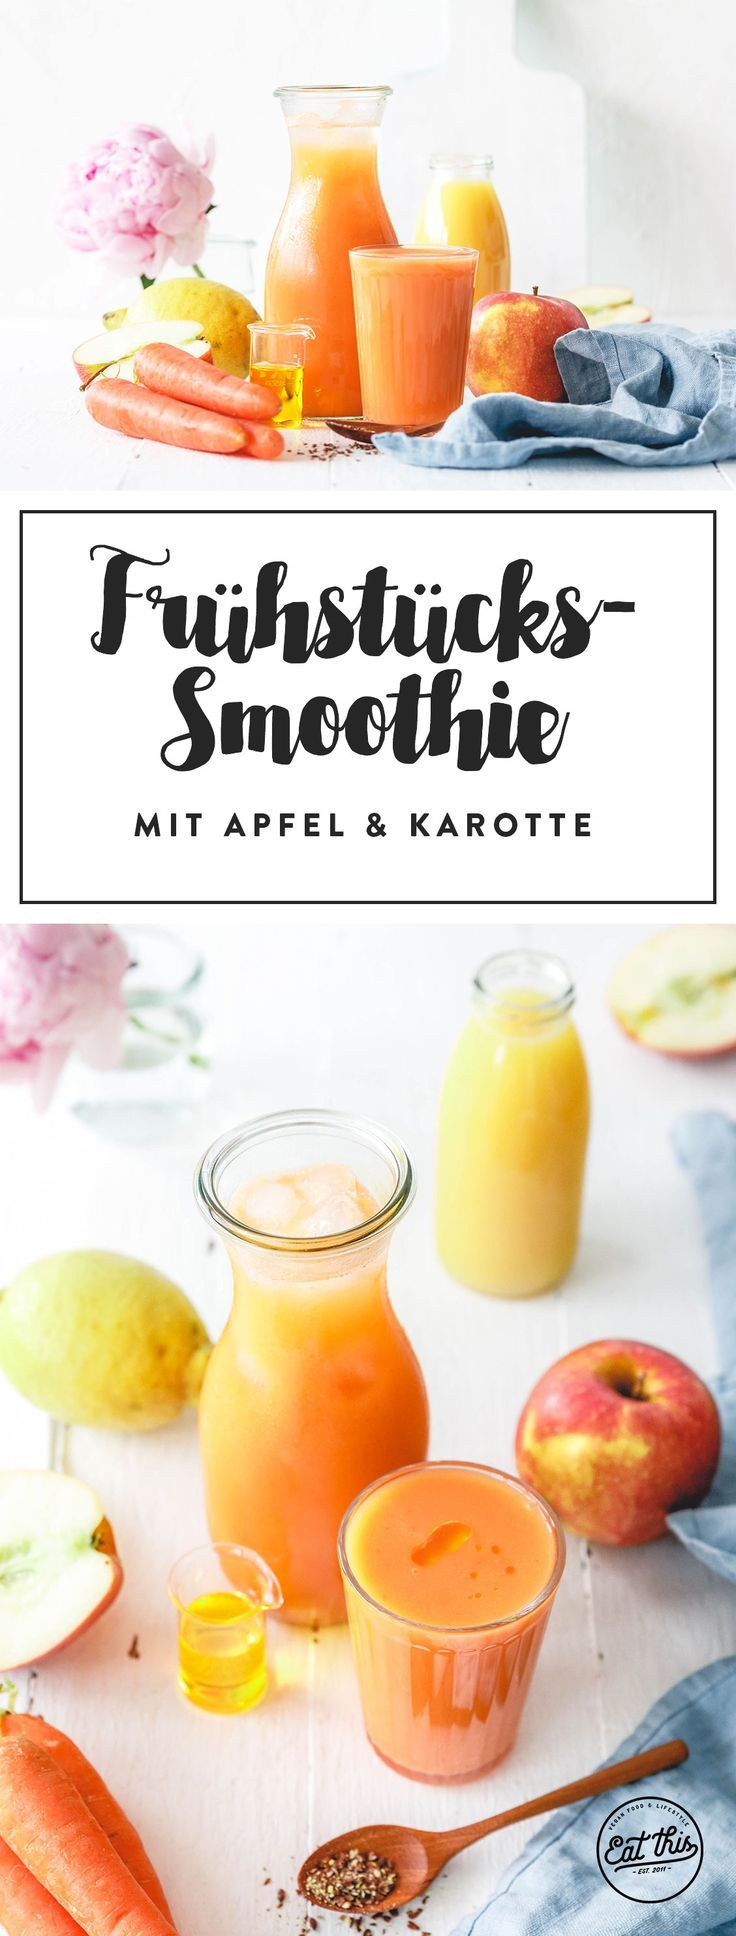 Delicious breakfast smoothie with apple  carrot  5 a day Delicious breakfast smoothie with apple  carrot  5 a day